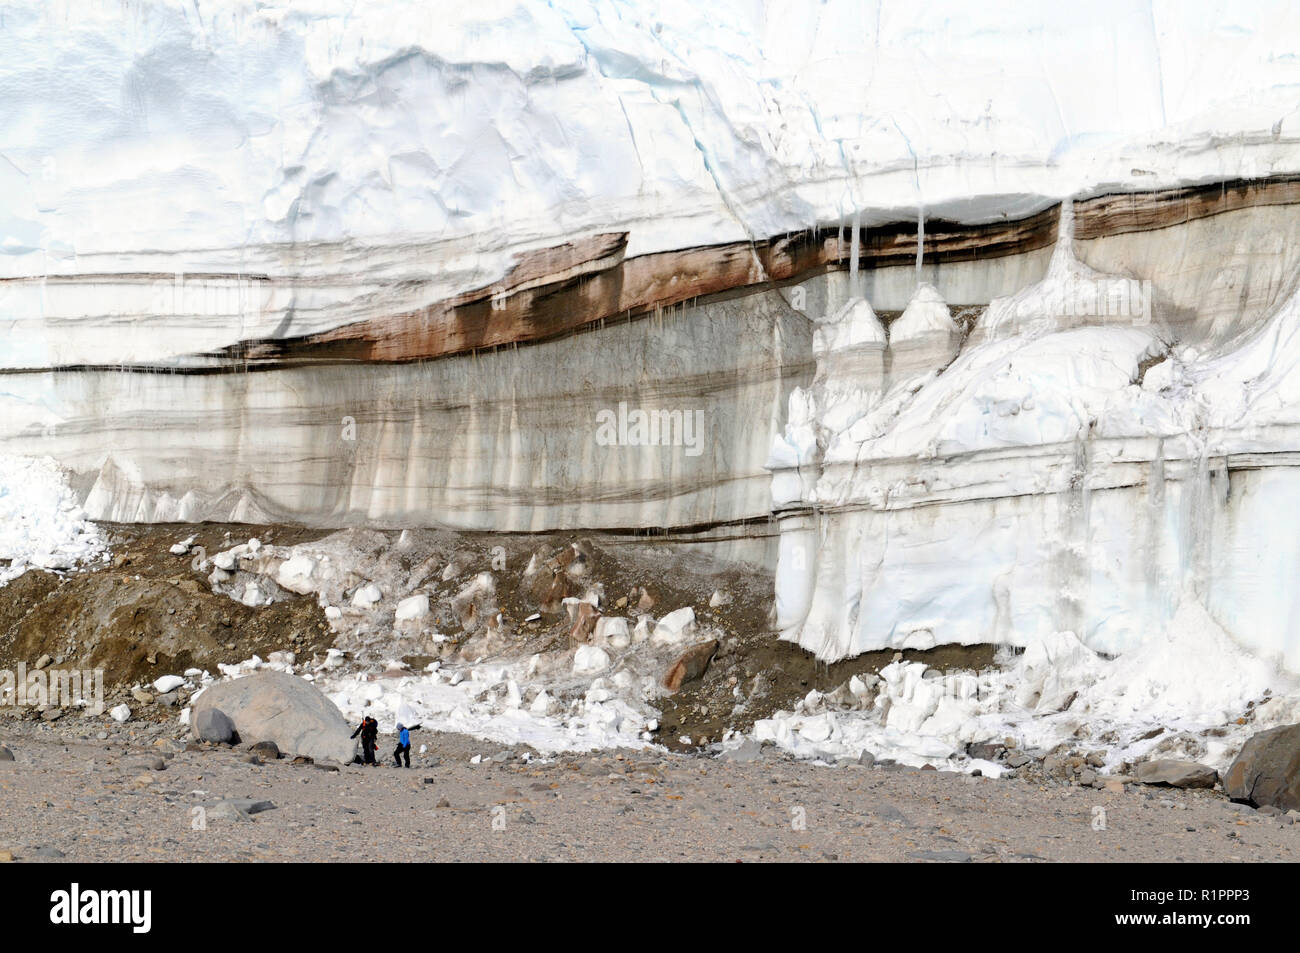 Layers of red color from iron deposits within glacier associated with Blood Falls at Taylor Valley, McMurdo Dry Valleys, Antarctica with 2 people - Stock Image